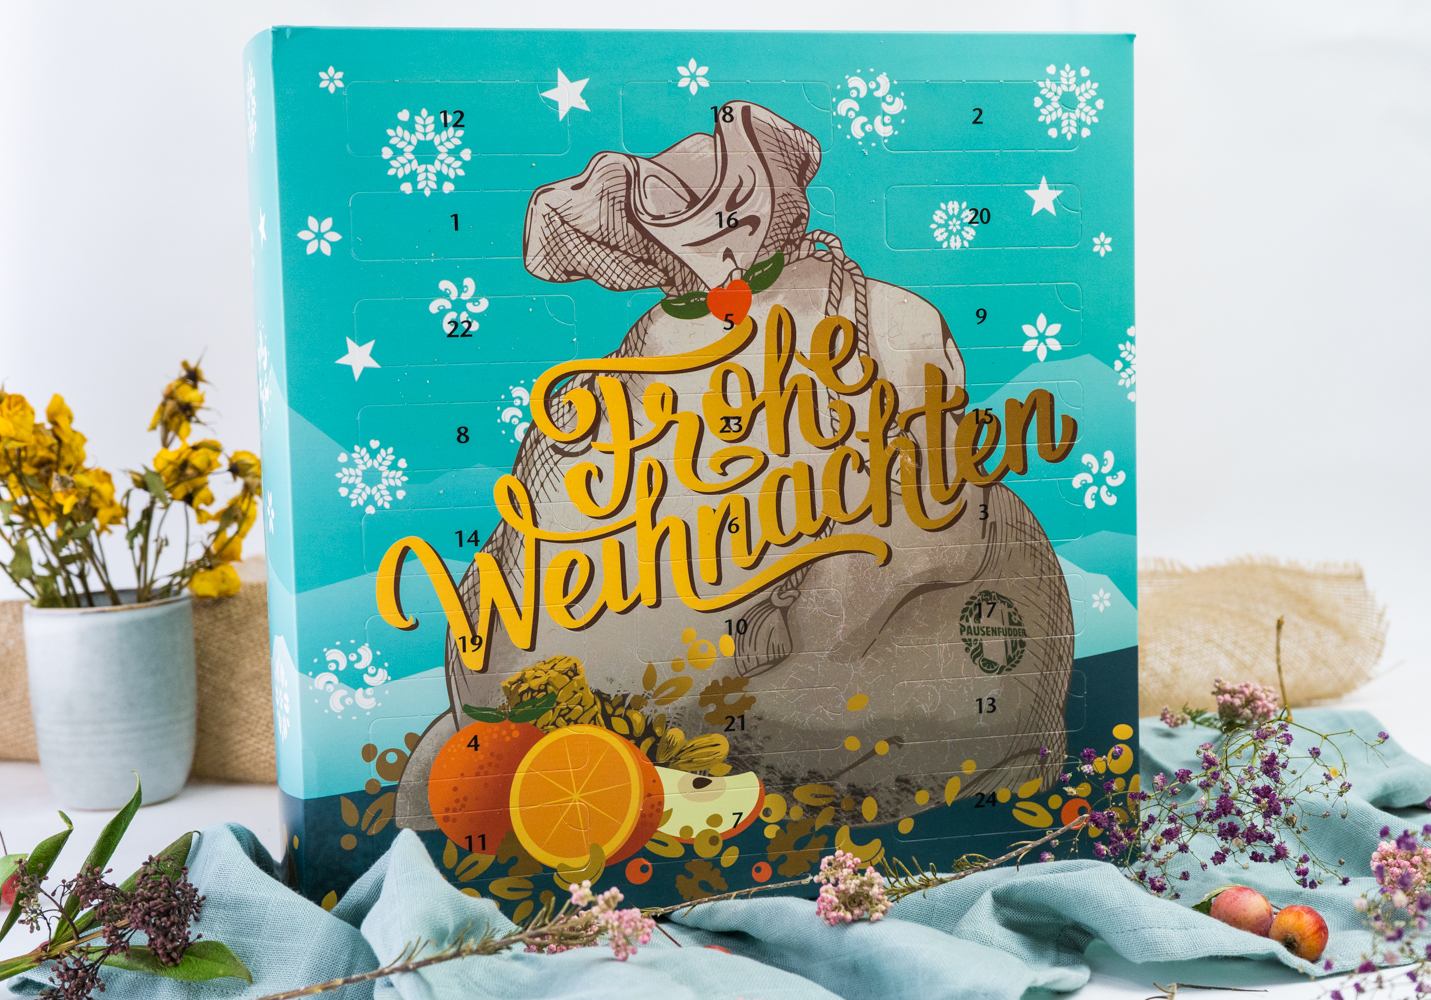 Pausenfudder gesunder Adventskalender vegan